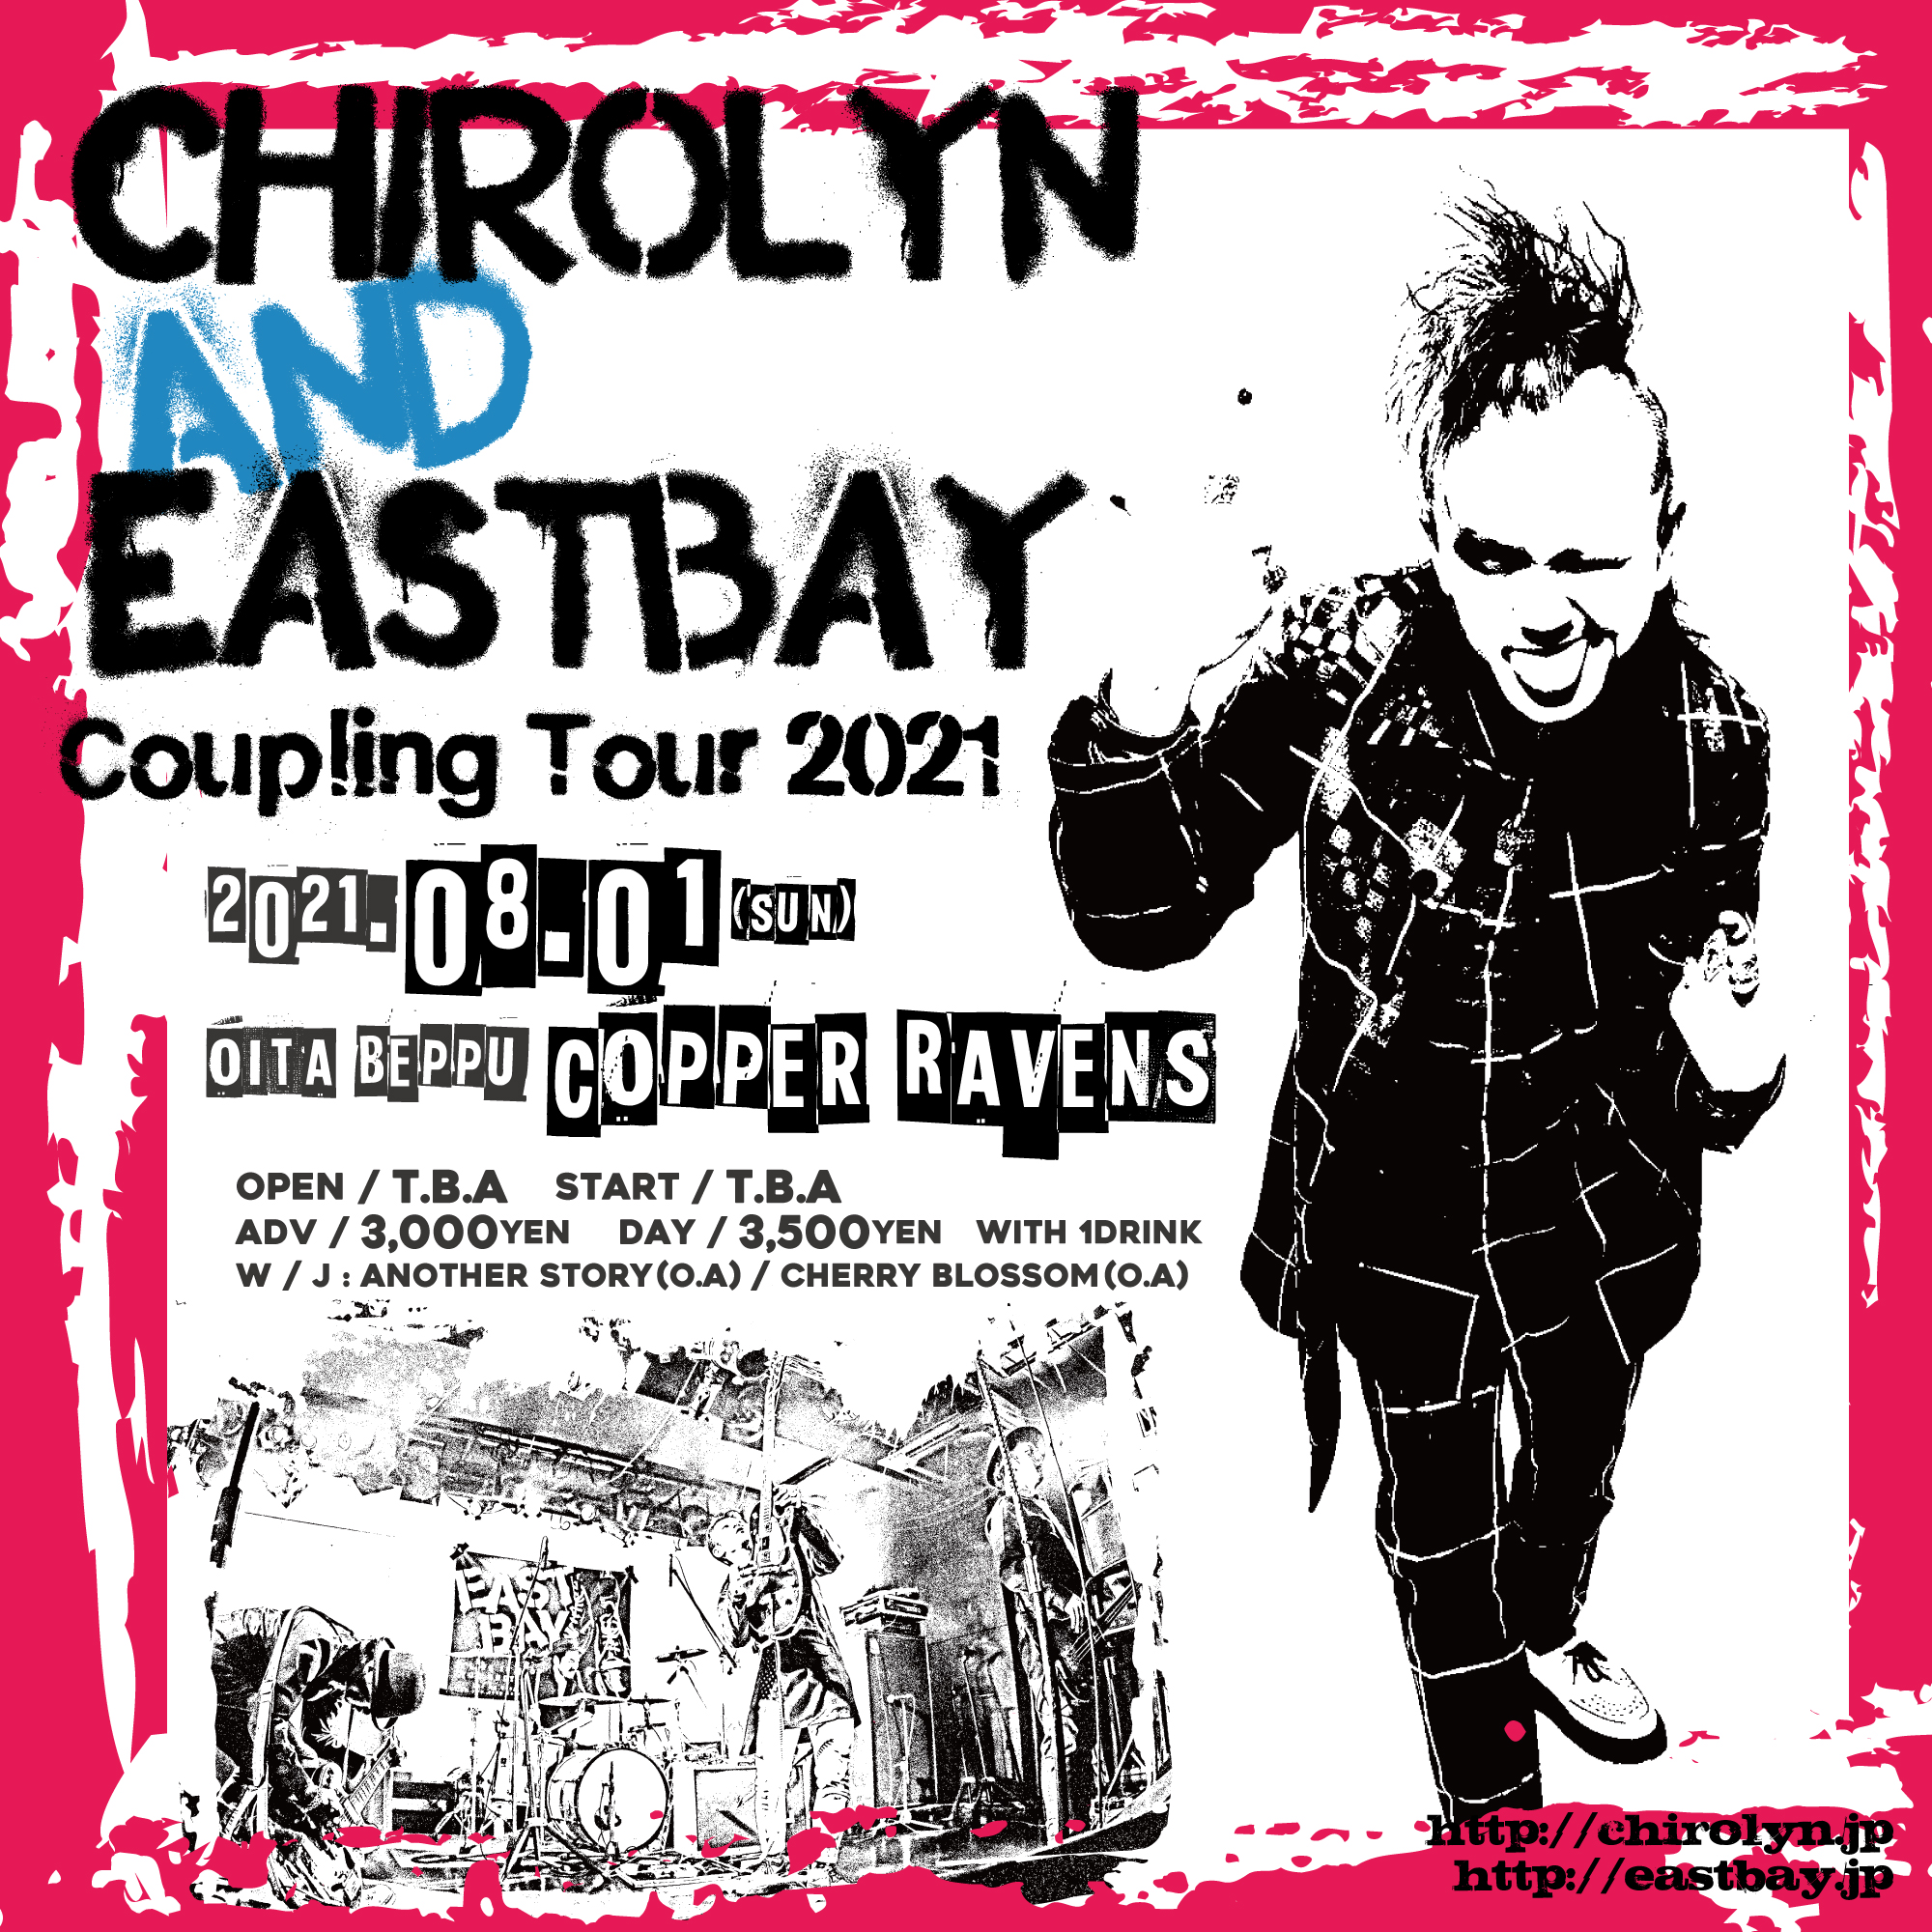 Chirolyn & EASTBAY Coupling Tour 2021 in 別府の写真